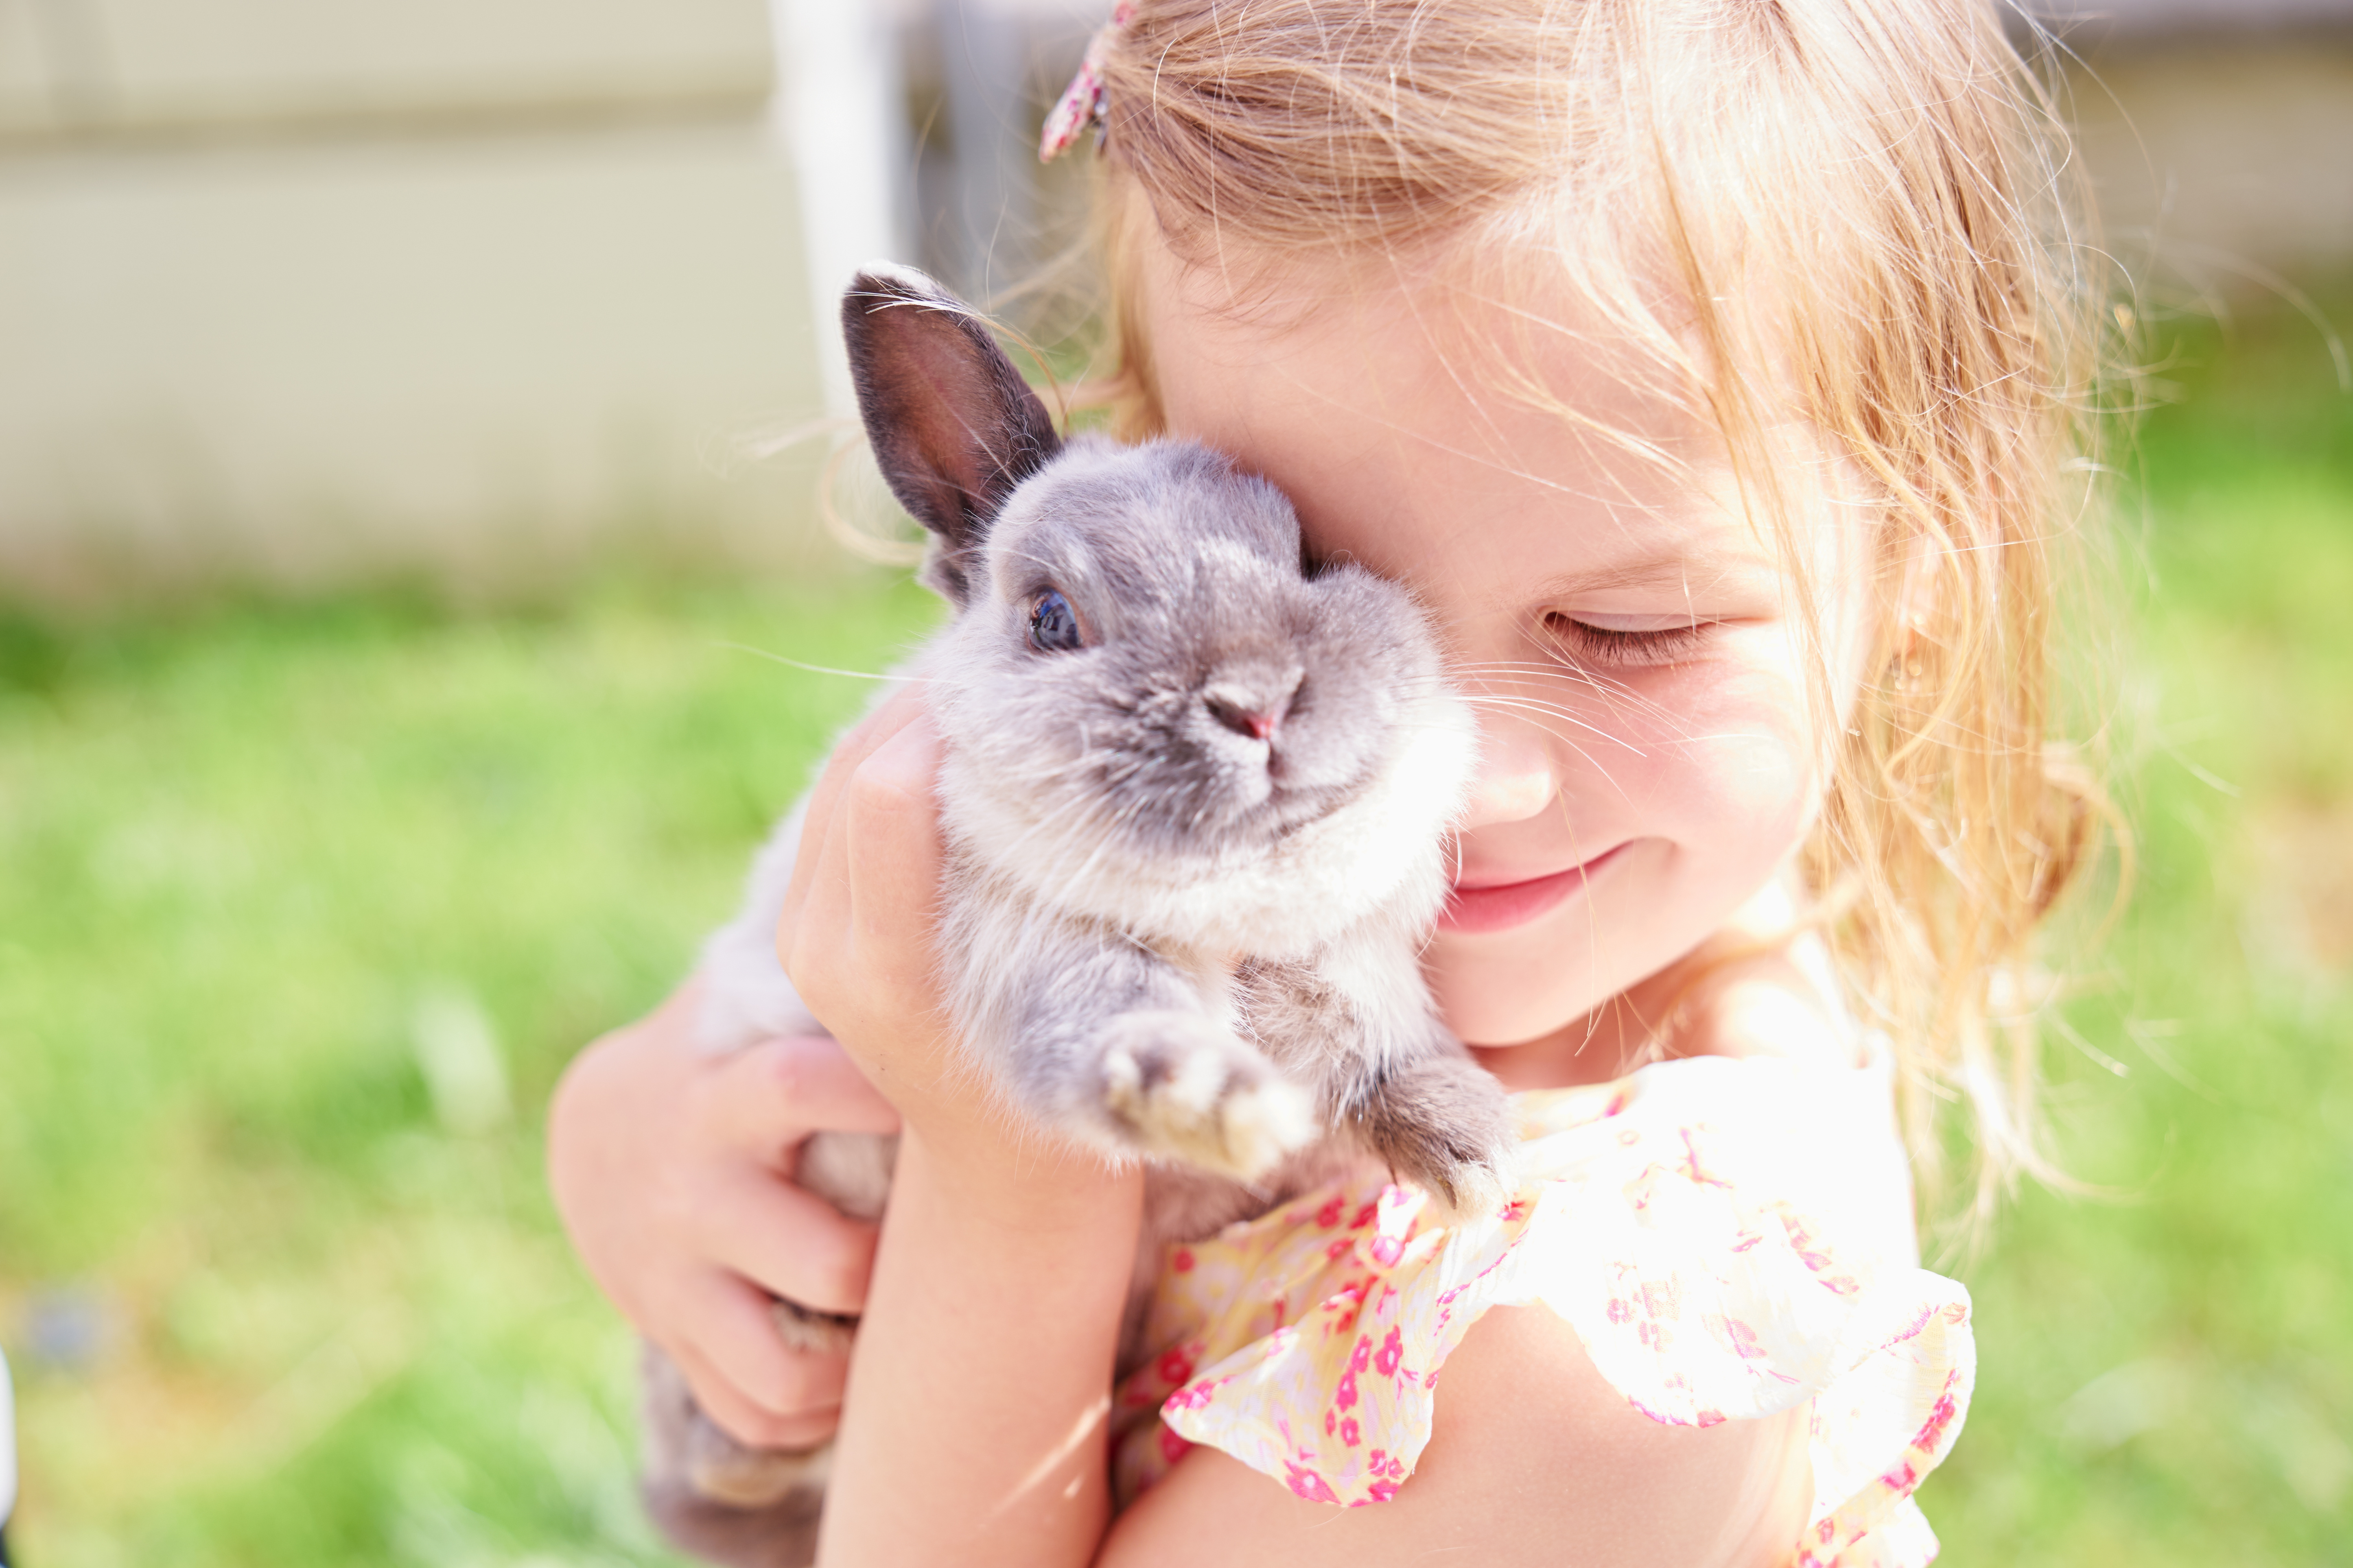 A girl and a rabbit